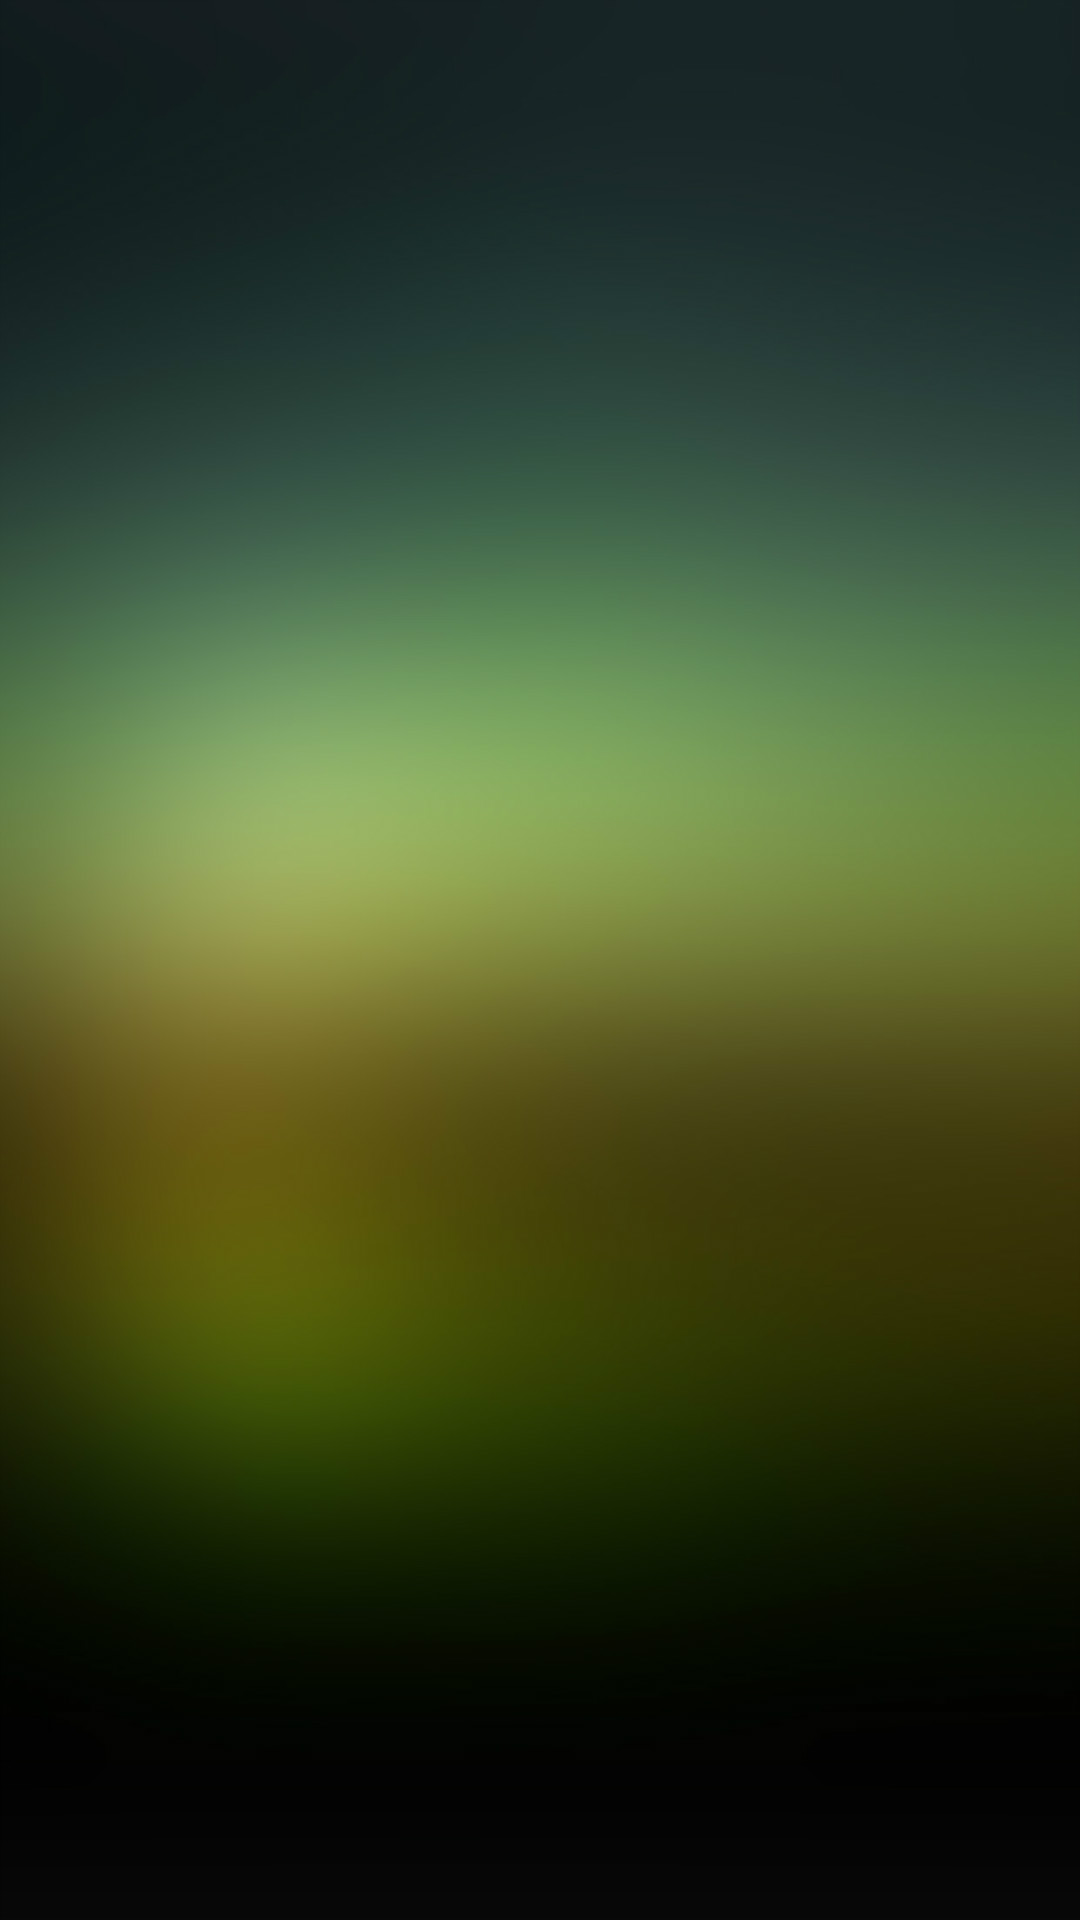 Aurora-Night-Nature-Gradation-Blur-iPhone-wallpaper-wpc5802367